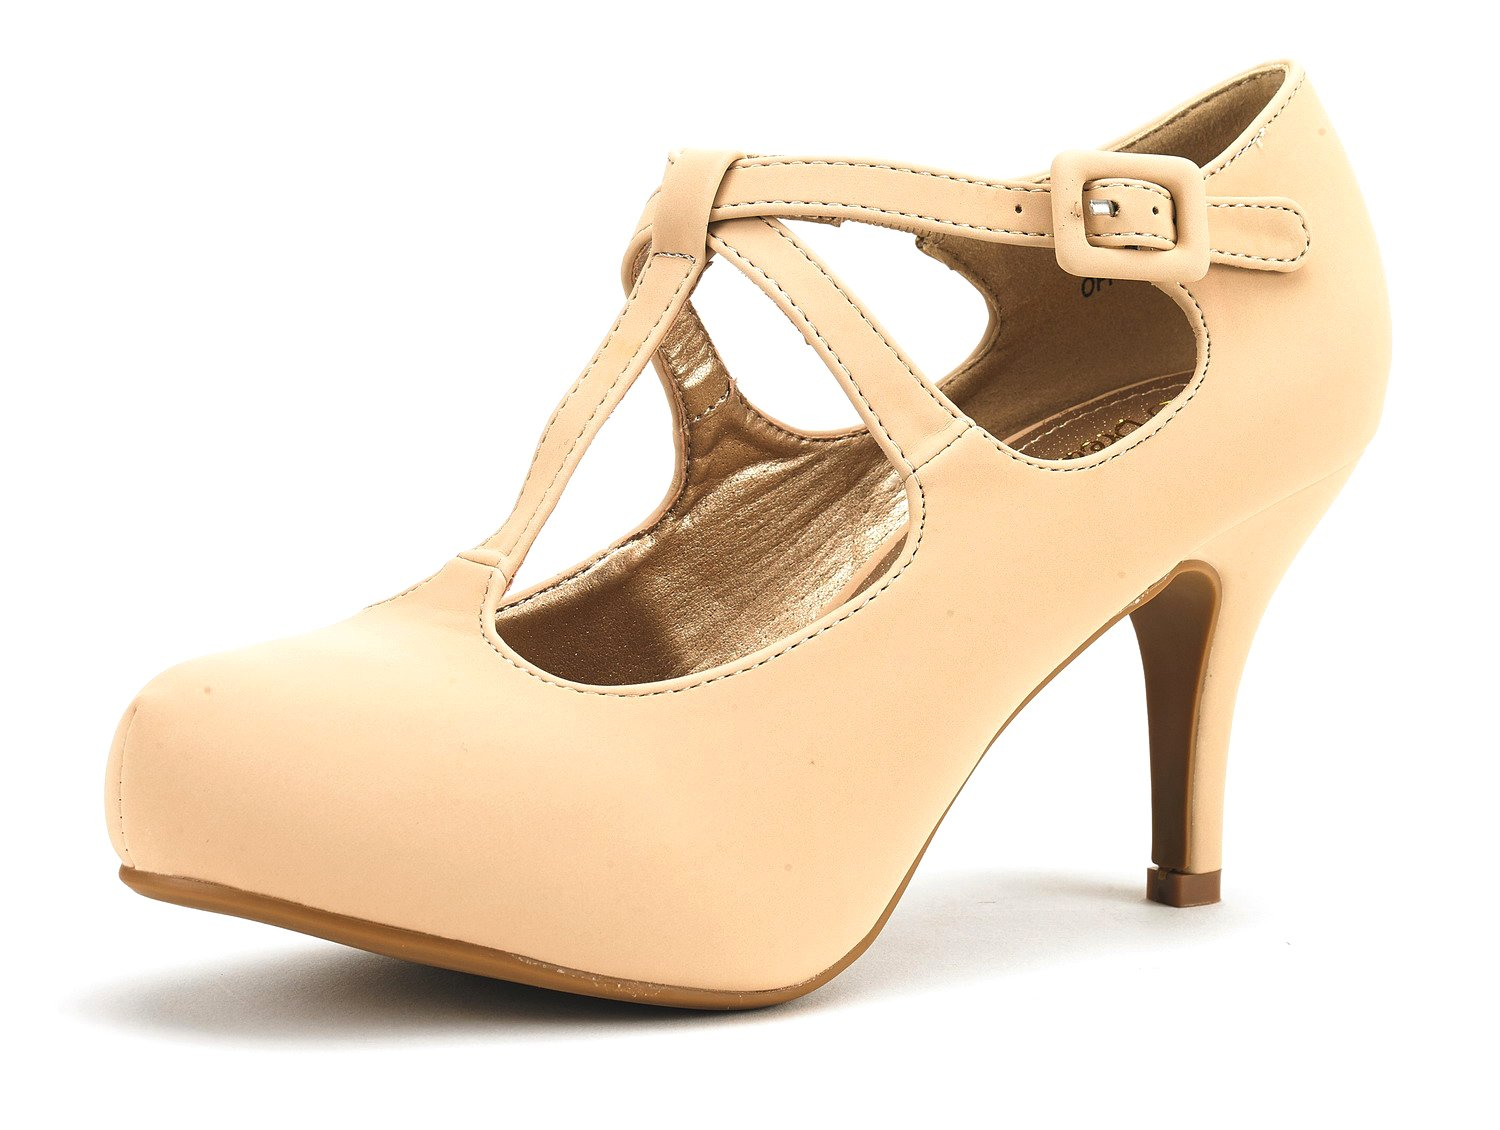 DREAM PAIRS Office-5 Women's New Classic Mary Jane Almond Toe High Heel Platform Pumps Shoes Nude-Nubuck Size 10